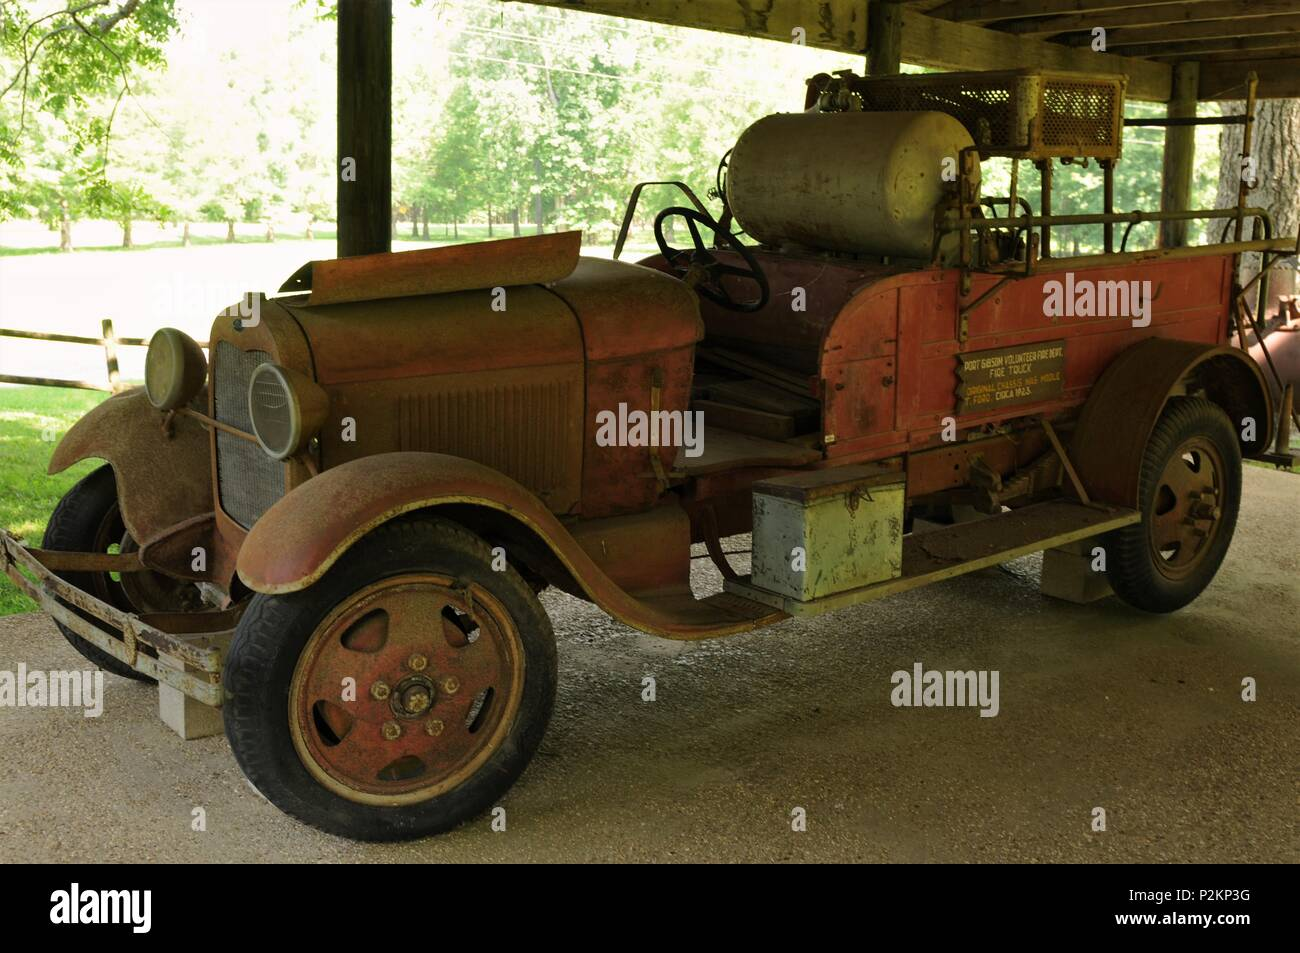 1923 Ford Model T fire truck used by the Port Gibson volunteer fire department. - Stock Image